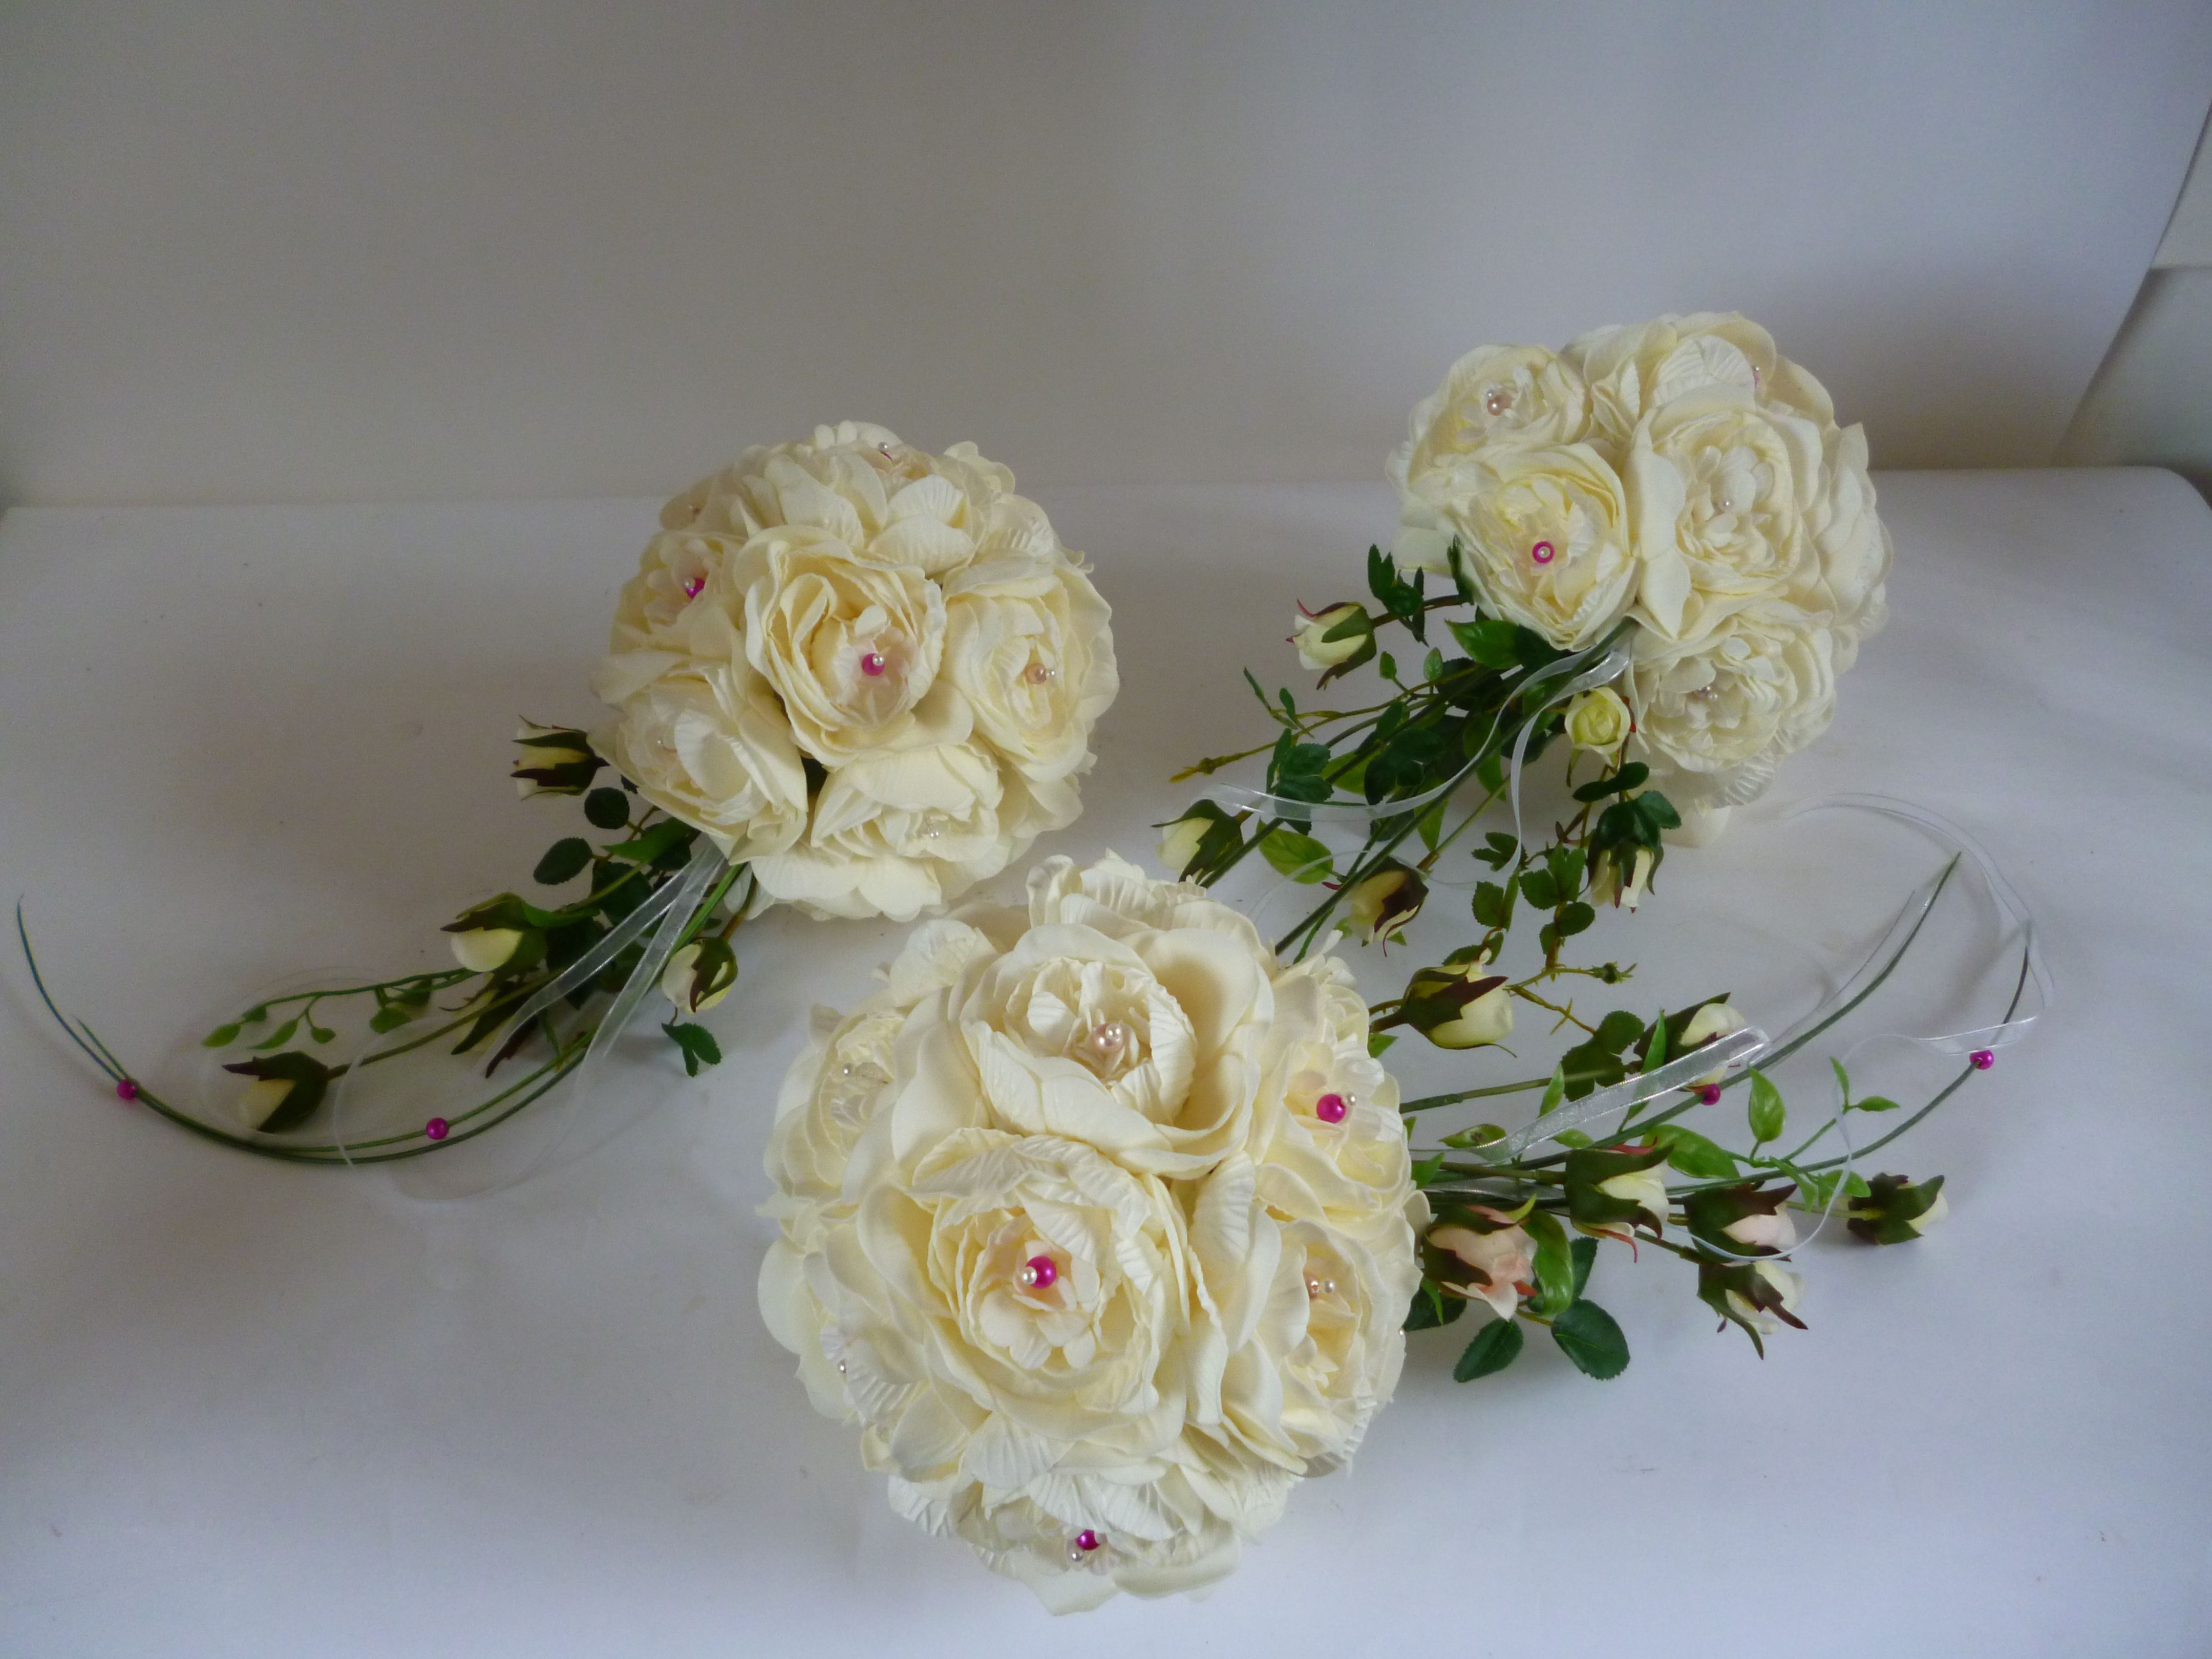 The Bridesmaids Bouquets for last Saturday :)